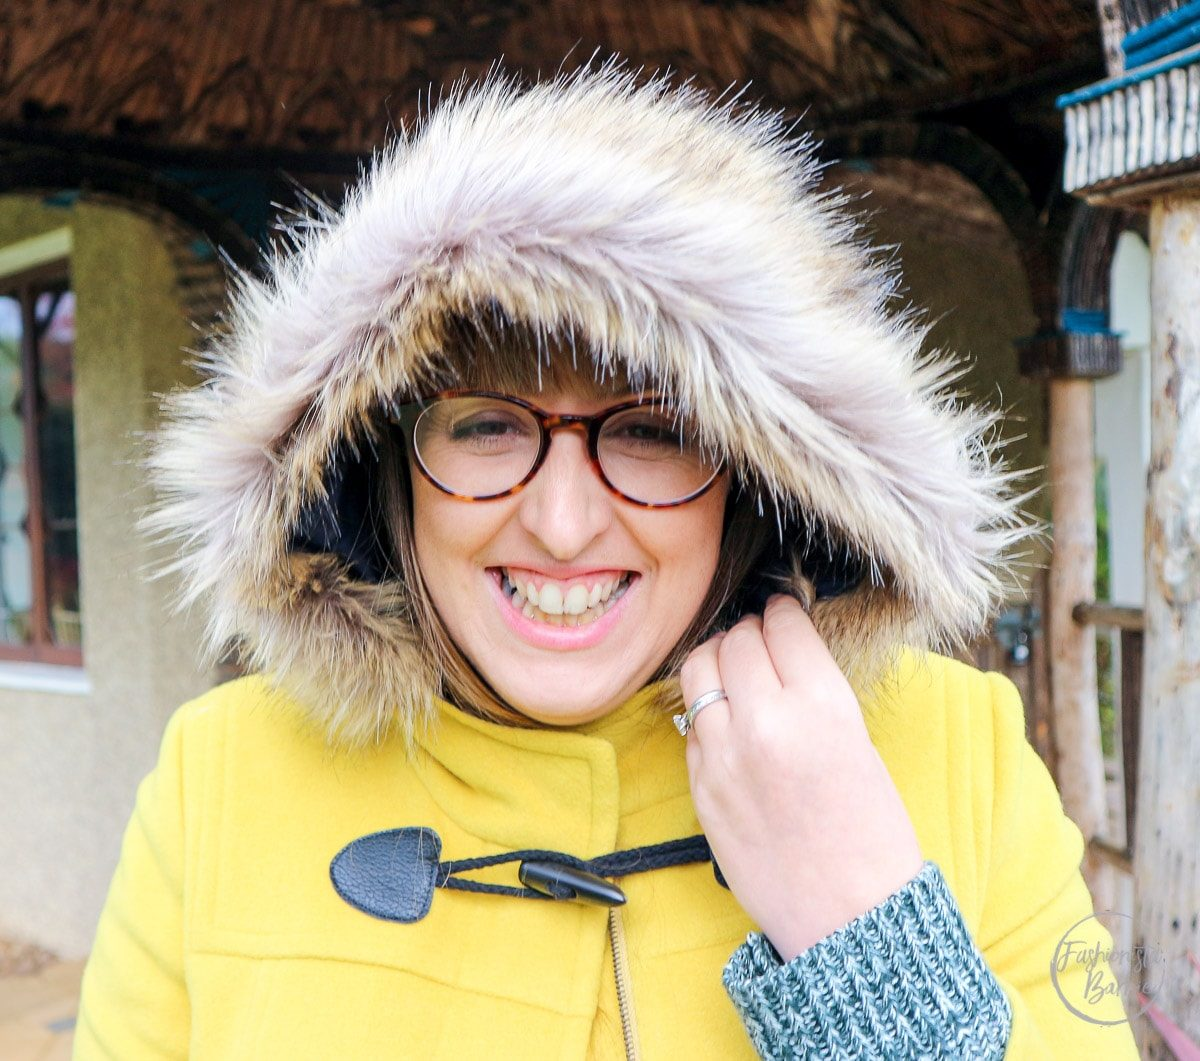 Boden, statement winter coat, winter coat, duffle coat, yellow coat, fashionista barbie, fashion blogger, style post, outfit, fashion, style blogger